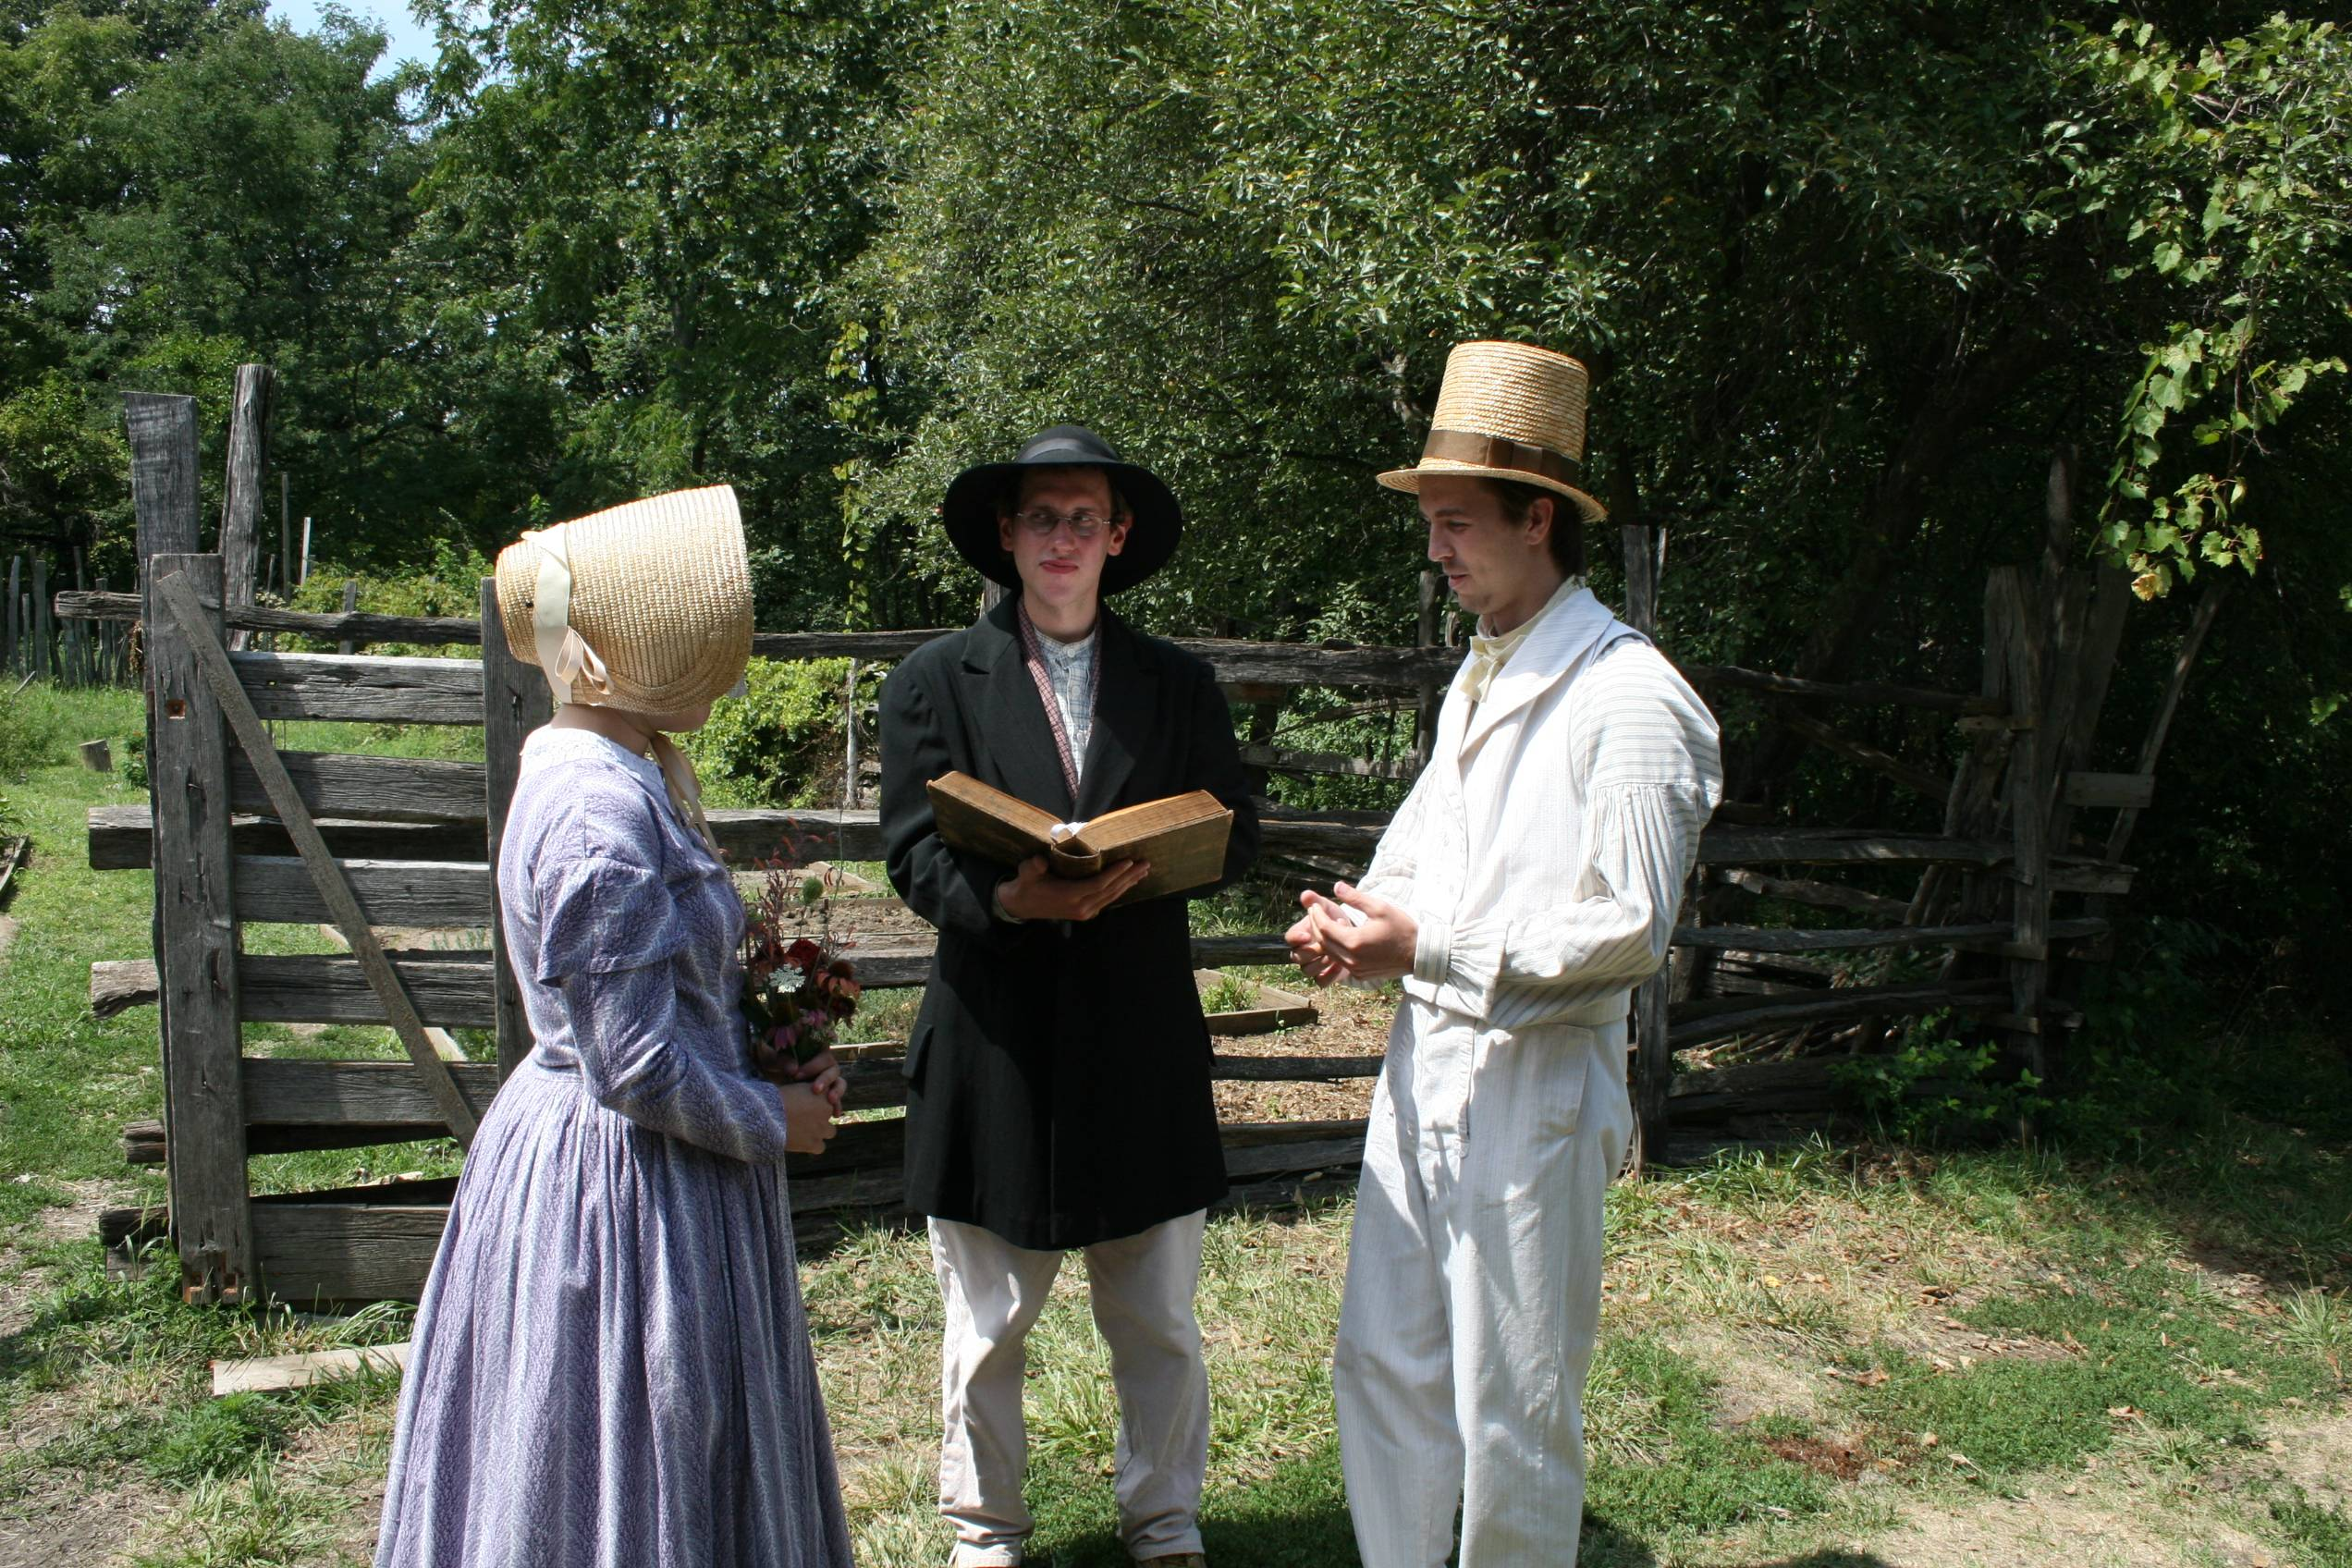 The Staff At Living History Farms Invites You To A Wedding 1850 Pioneer Farm Interpreters Will Recreate Ceremony On Saay